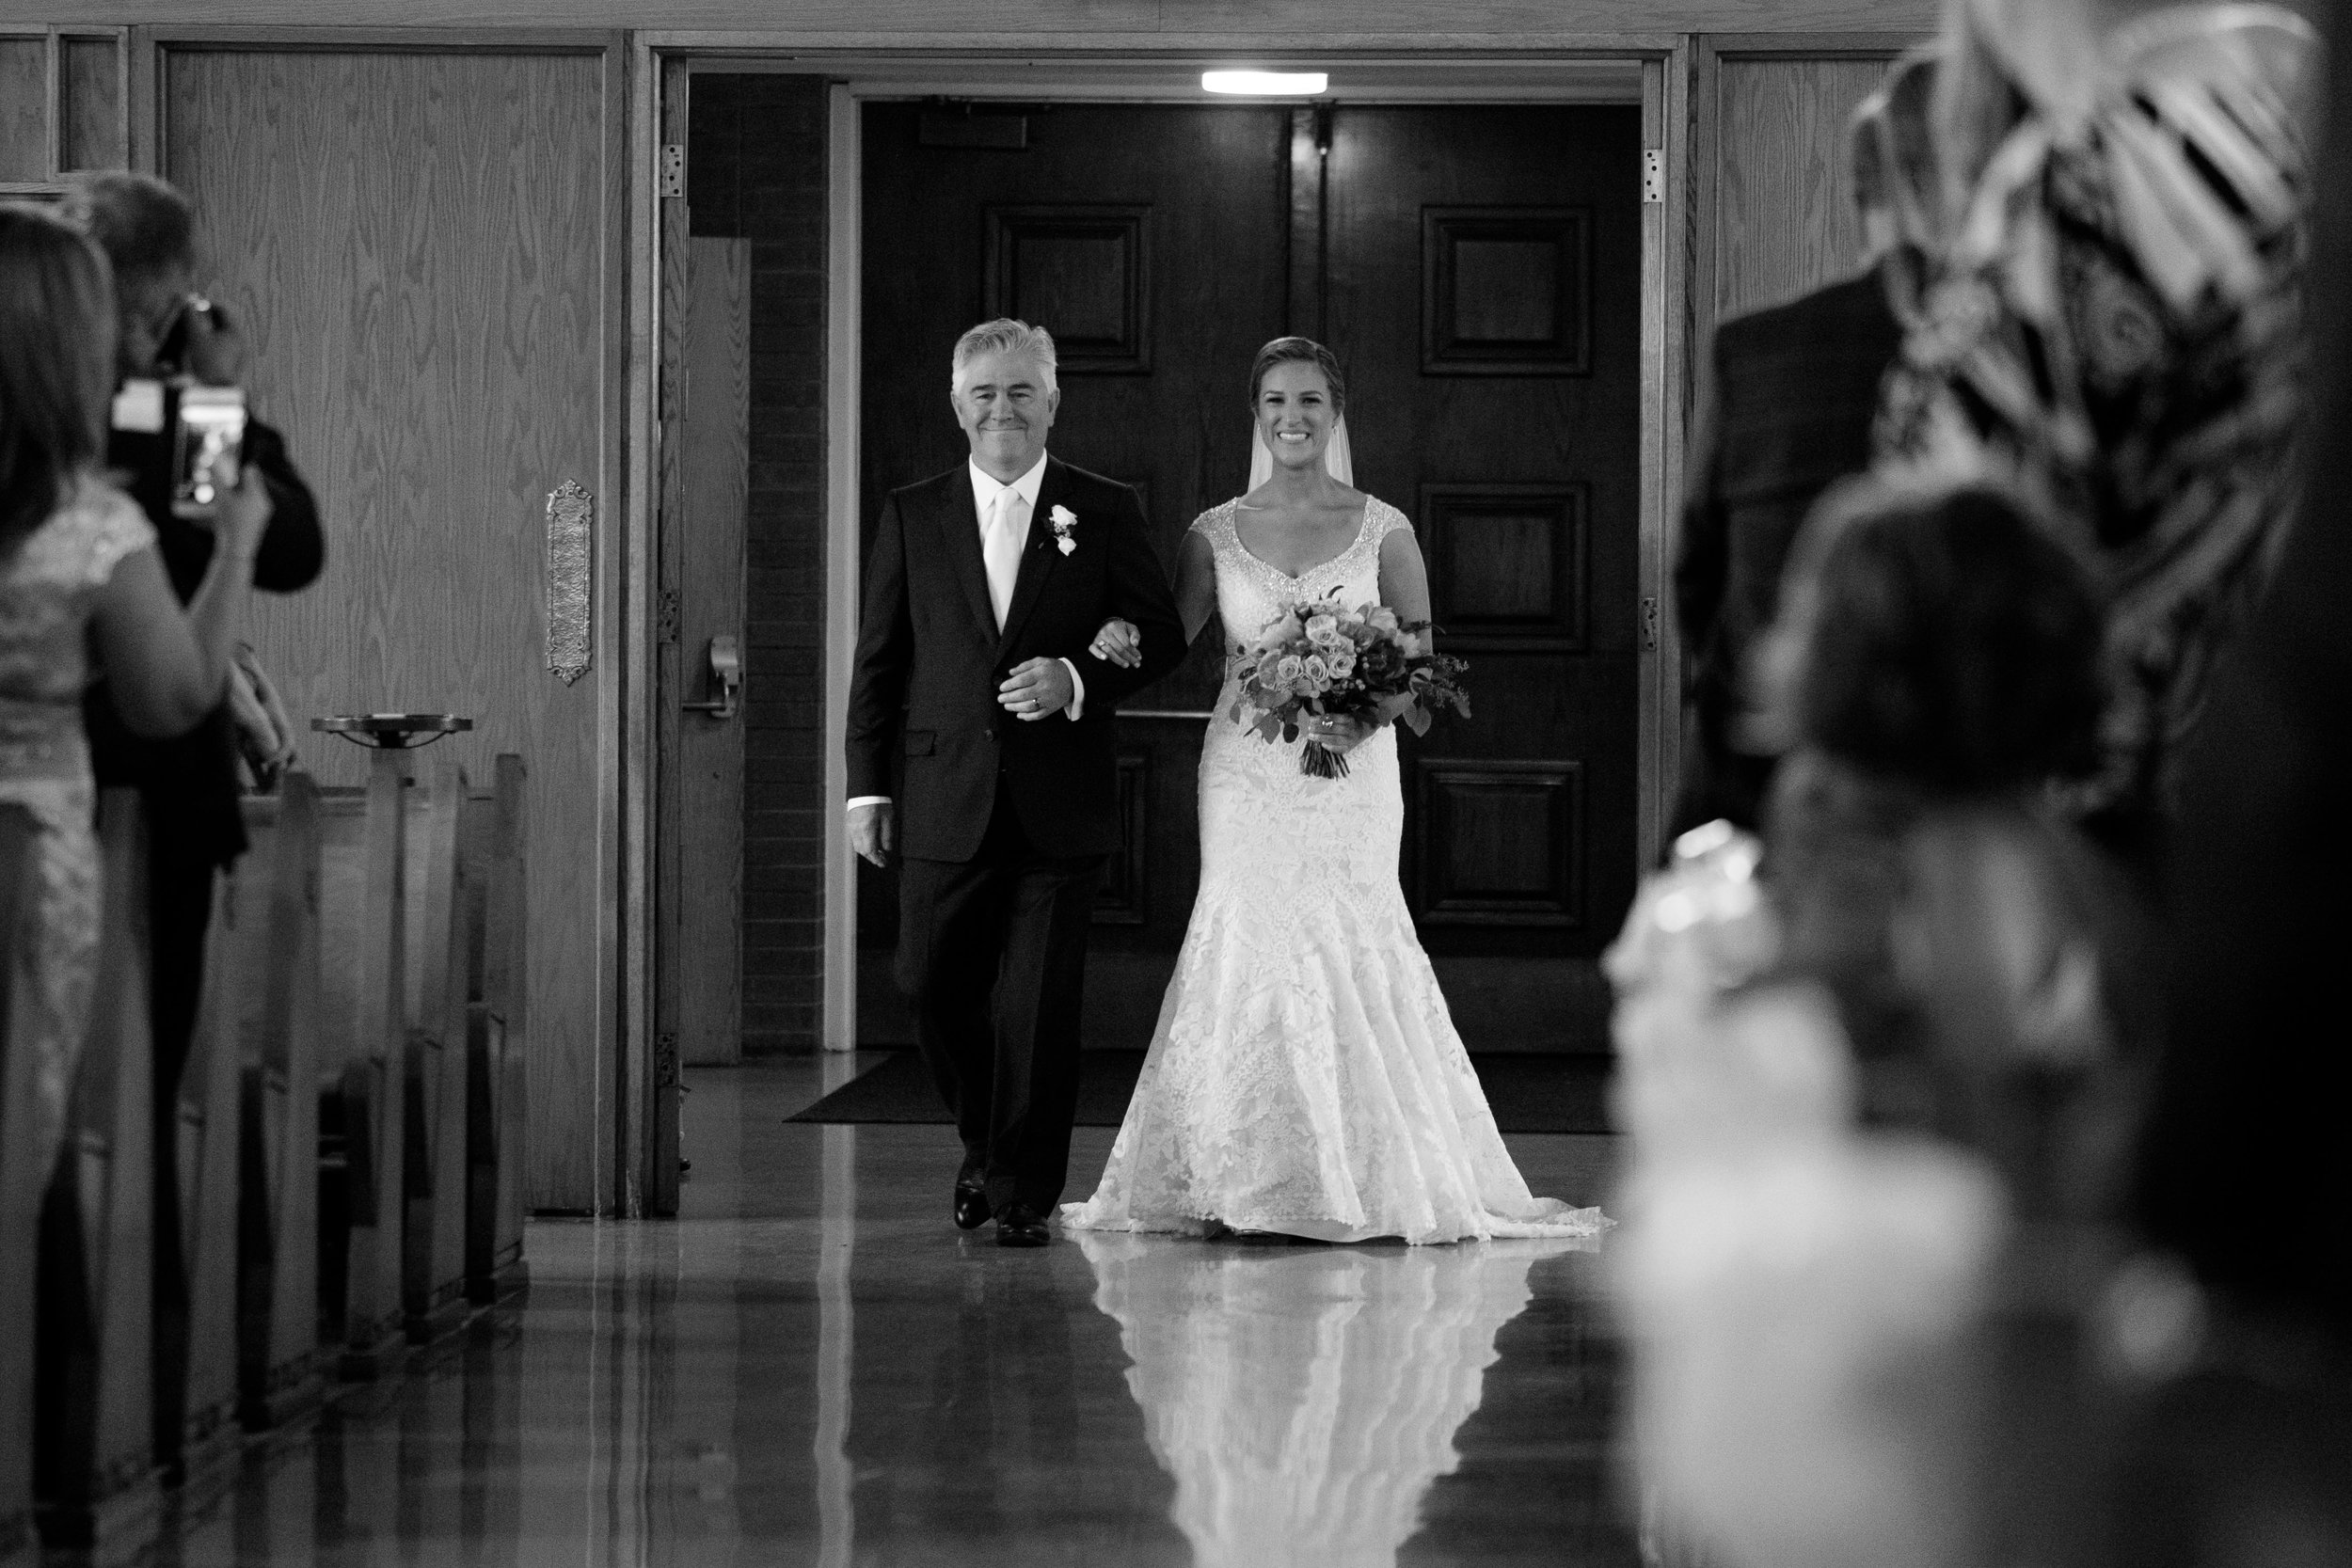 Sabrina and her dad walk down the aisle during her wedding ceremony in Toronto.